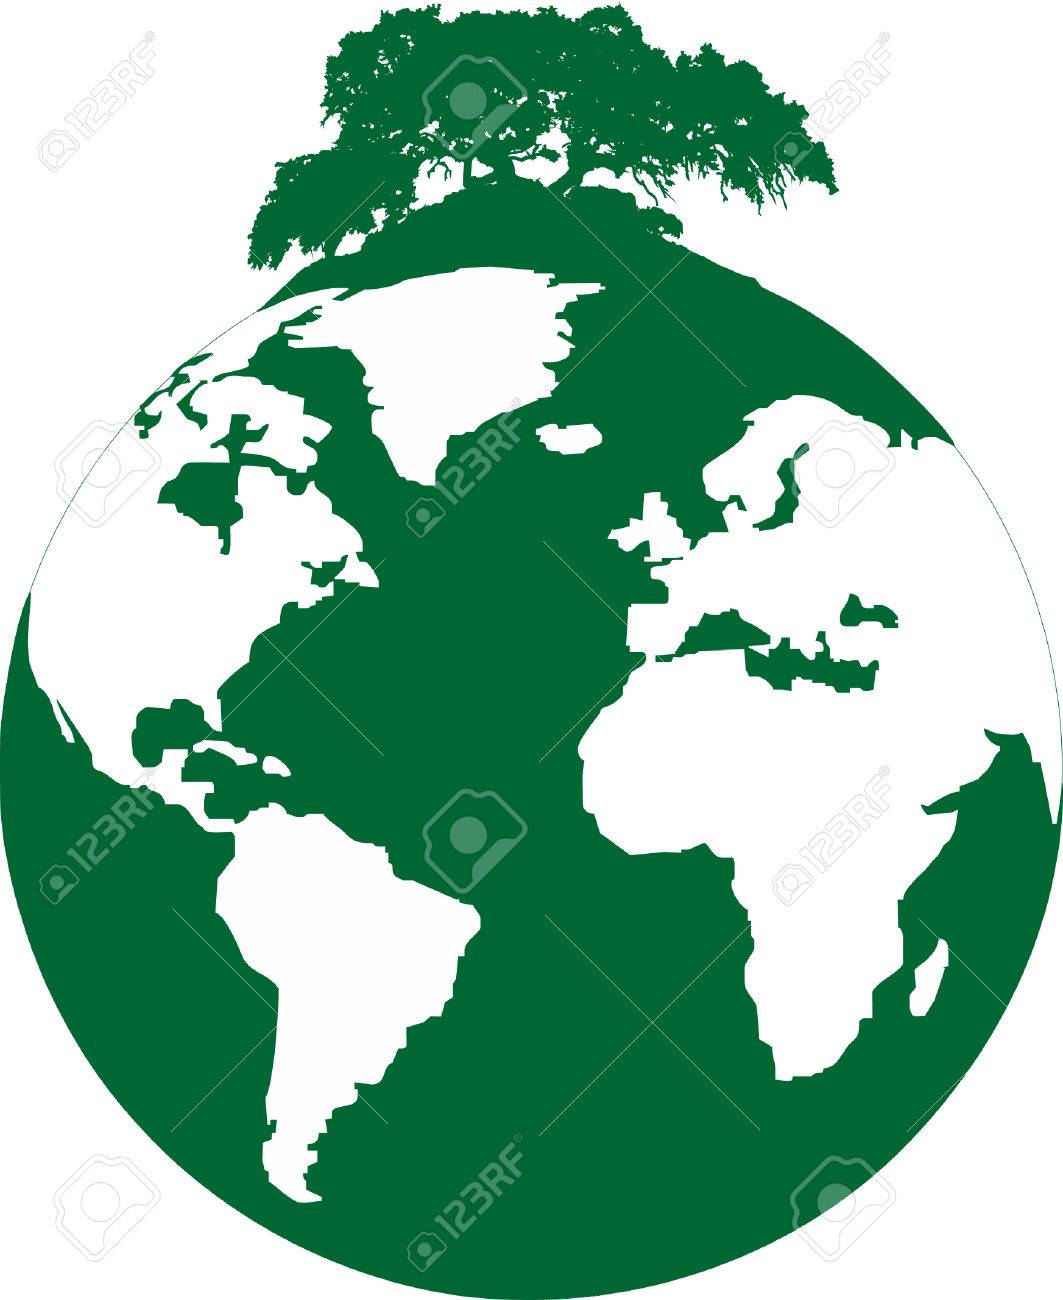 illustration of a ecological footprint of mankind on the planet Stock Vector - 8253810